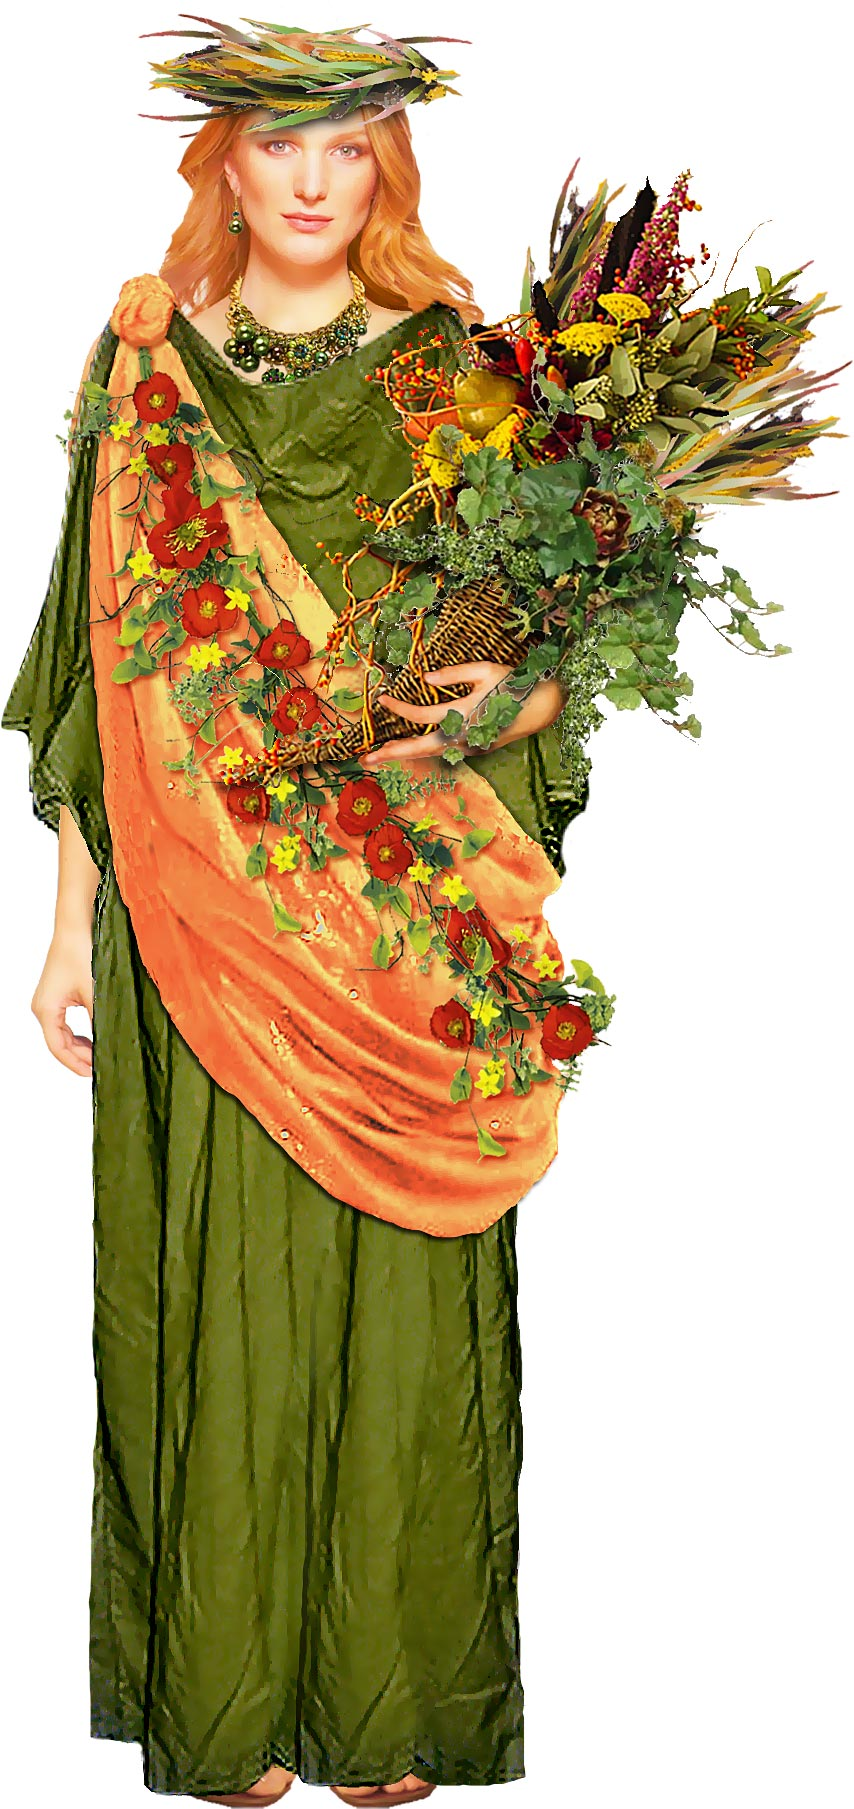 Demeter witches of the craft Goddess of nature greek